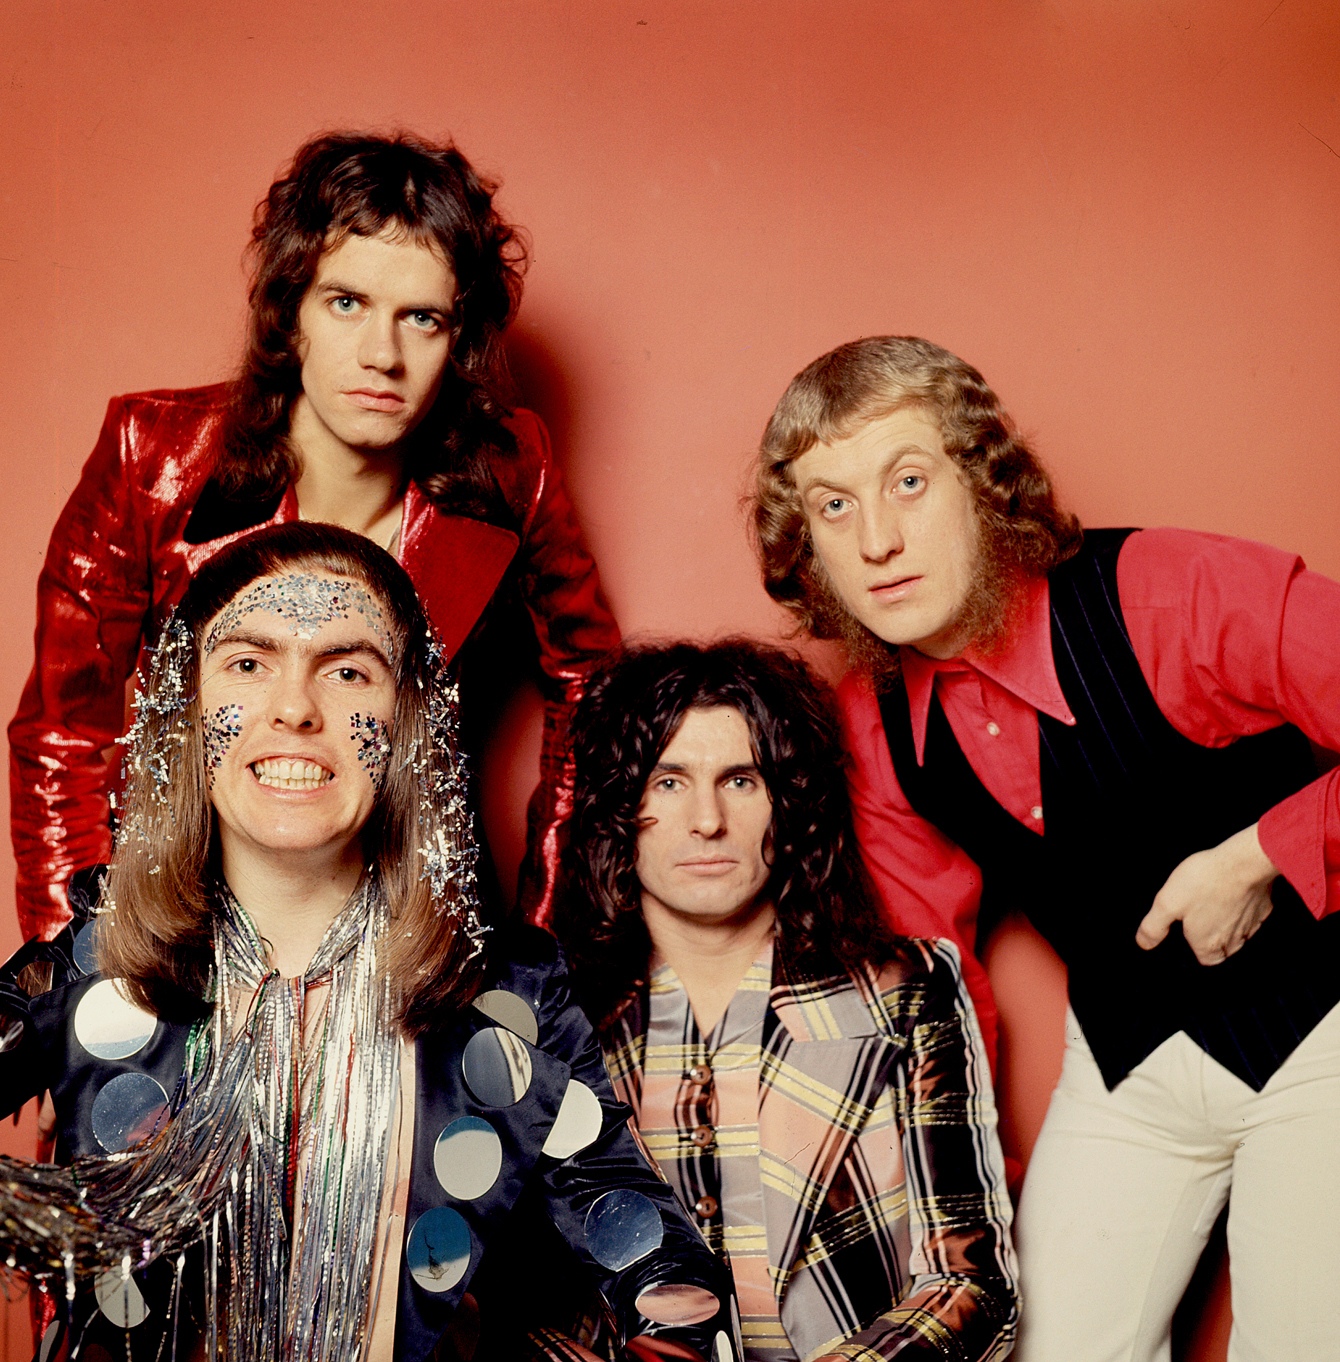 When Slade Rocked the World